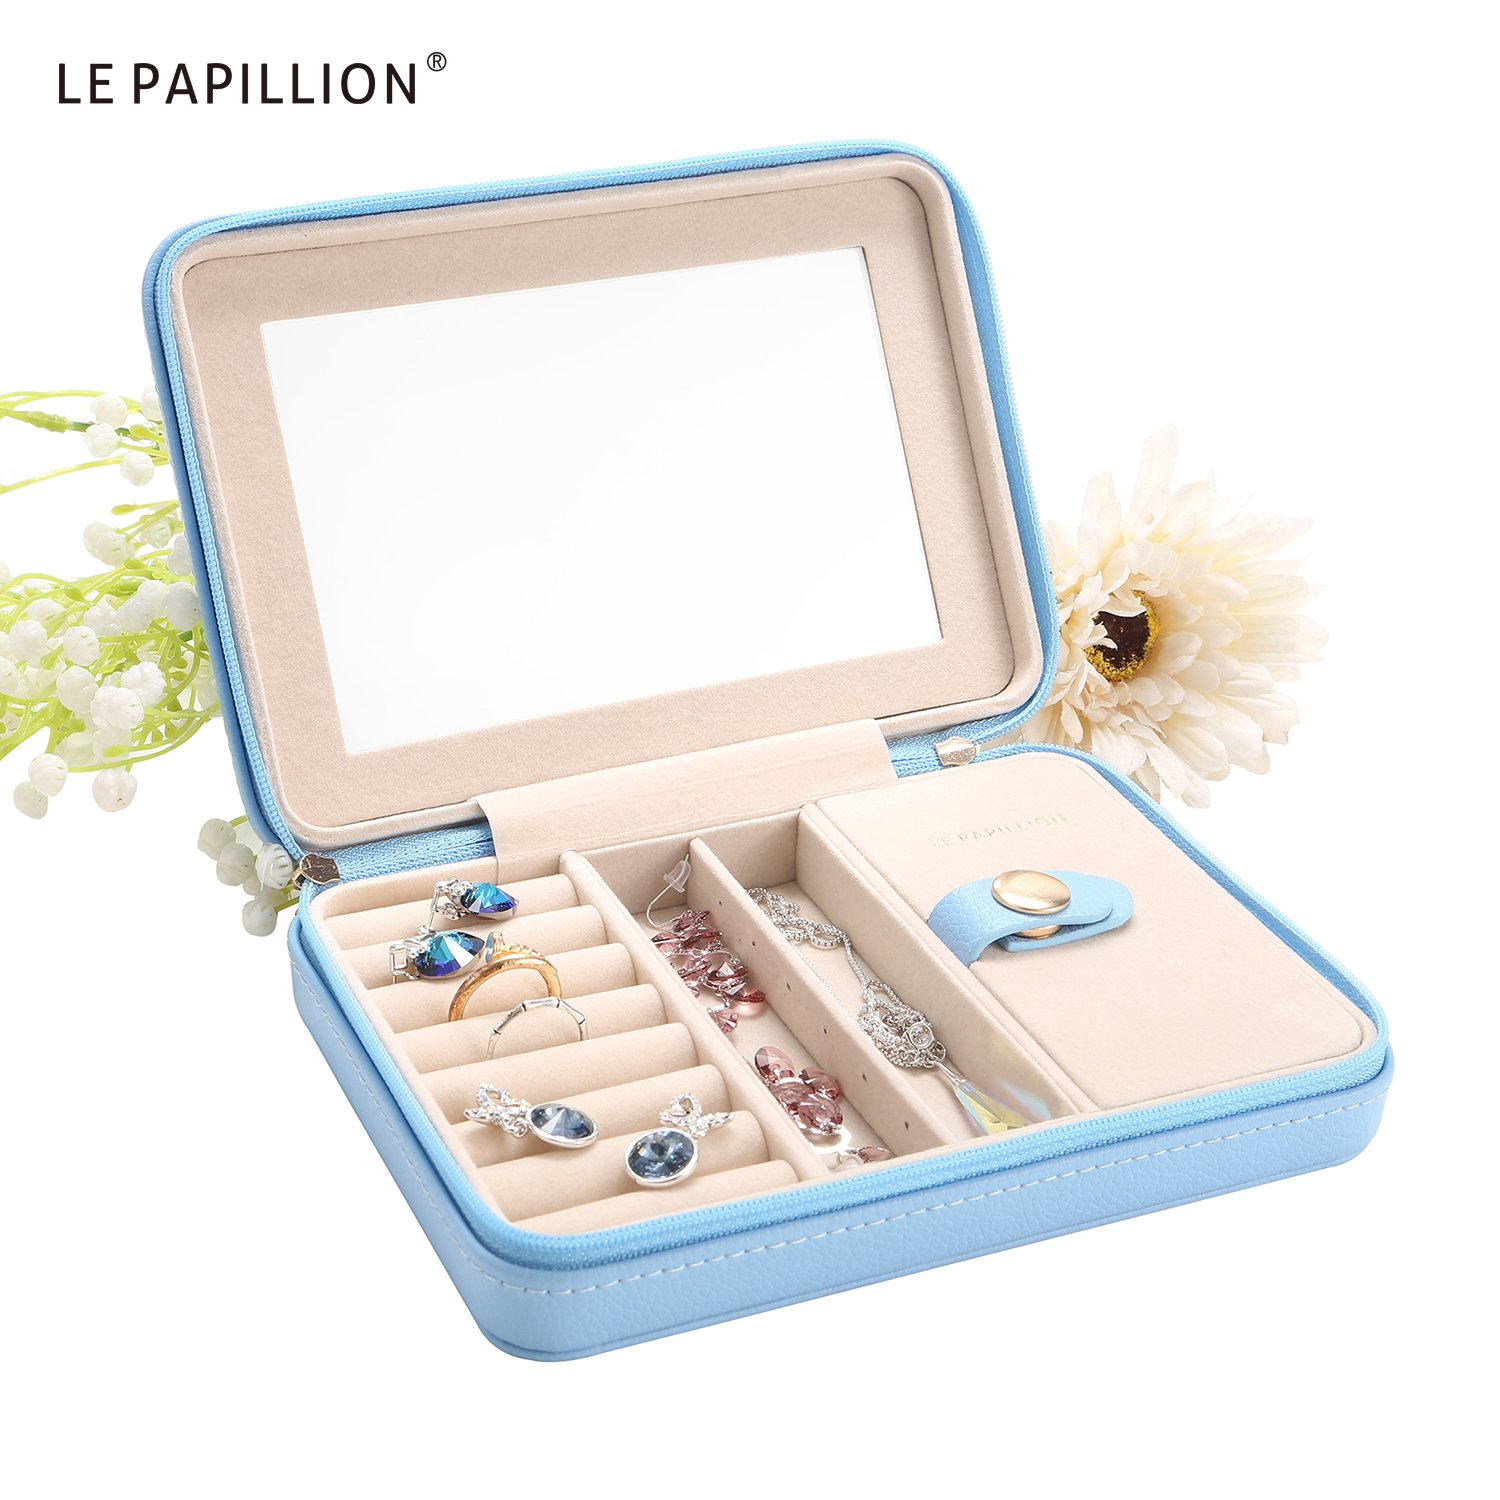 LE Papillion Small Jewelry Box Travel Jewelry Box Jewelry Travel Case Jewelry Organizer with Large Mirror, Gifts for Women, Great Gift Idea(Blue) by LE PAPILLION JEWELRY (Image #2)